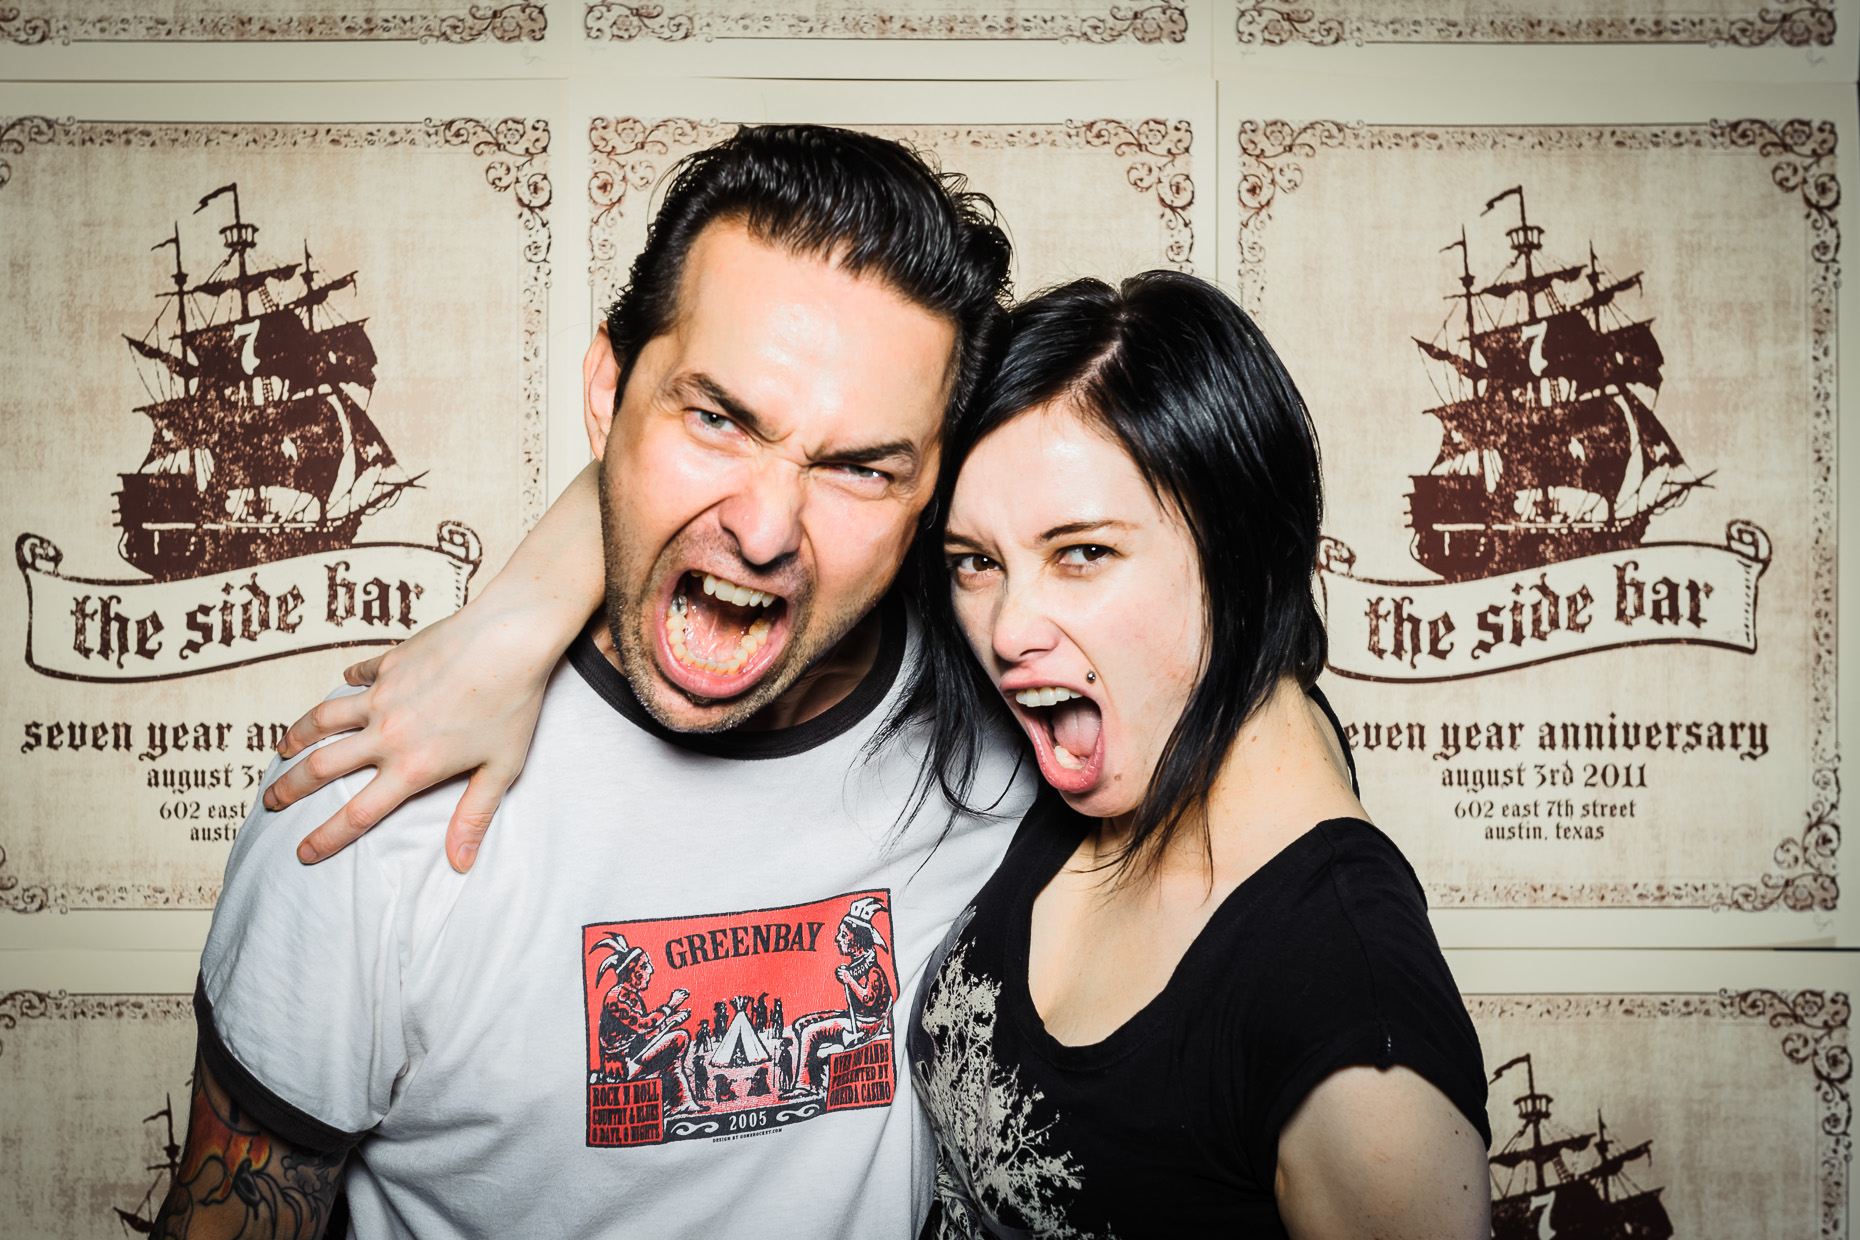 Photo-booth-Side-Bar-Austin-Event-Commercial-Photography.jpg